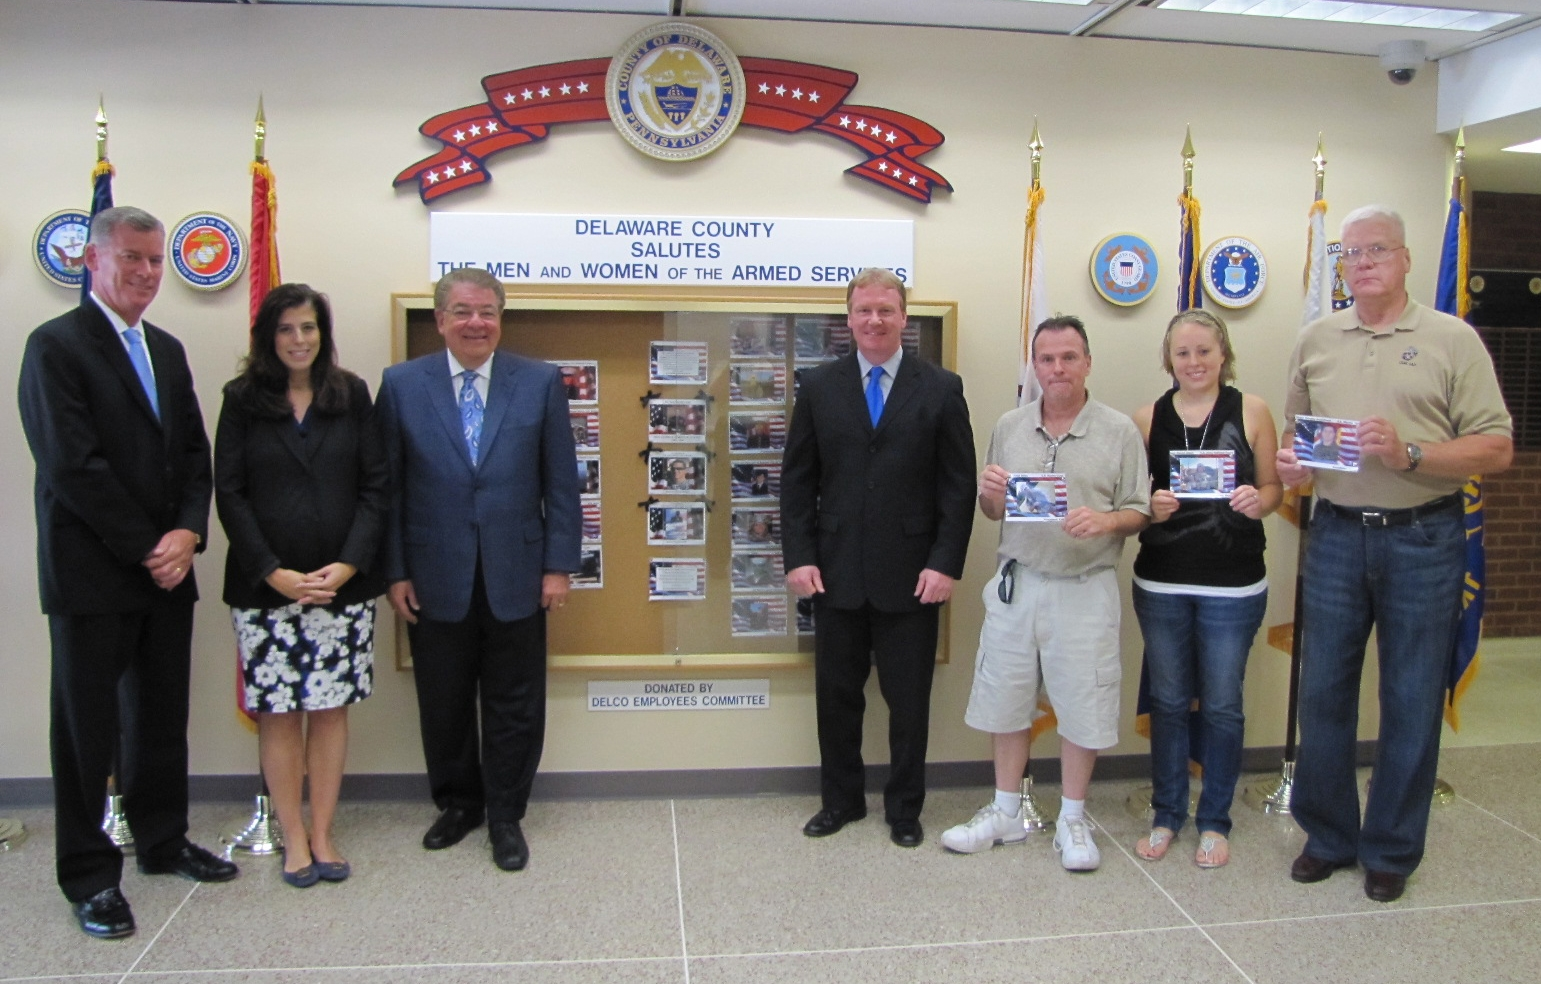 County Council updates Armed Services tribute board with three area veterans